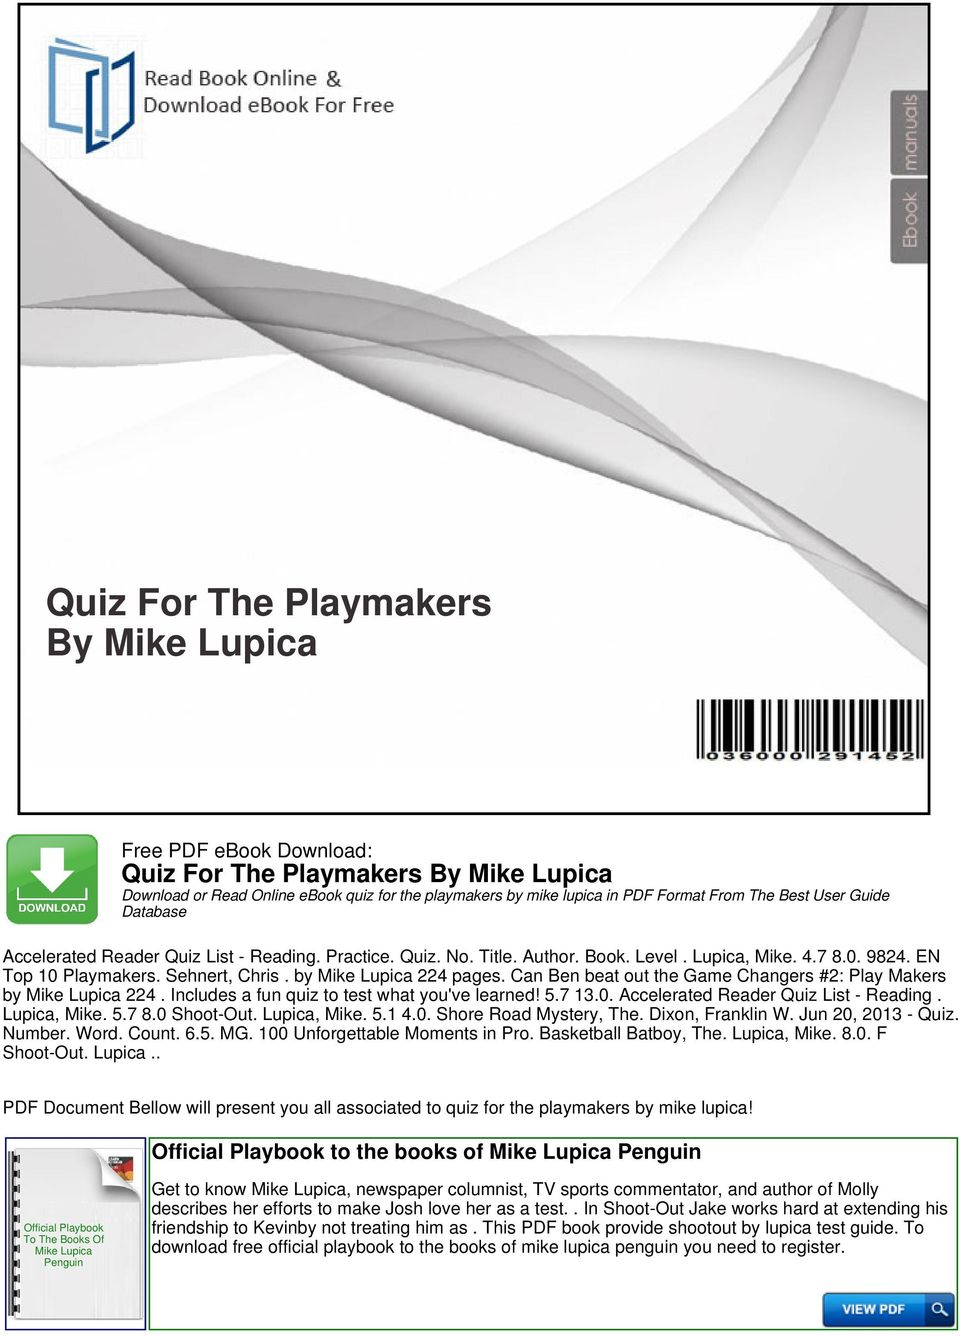 Quiz for the playmakers by mike lupica pdf can ben beat out the game changers 2 play makers by mike lupica 224 fandeluxe